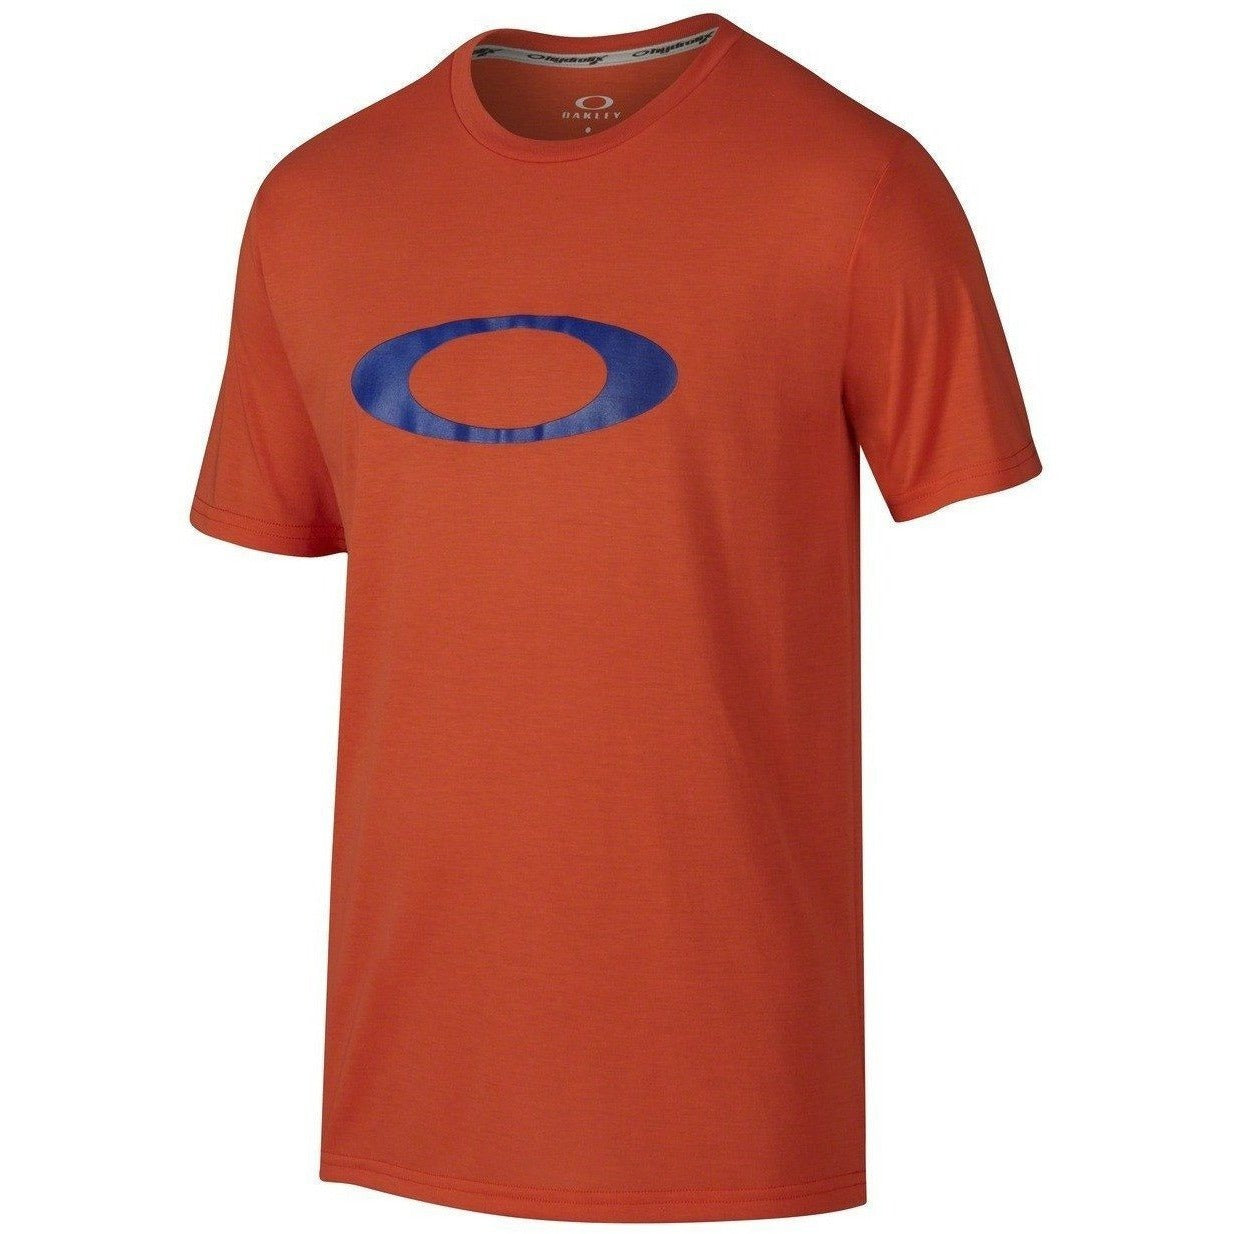 Oakley O-ONE ICON Shirt - 88 Gear